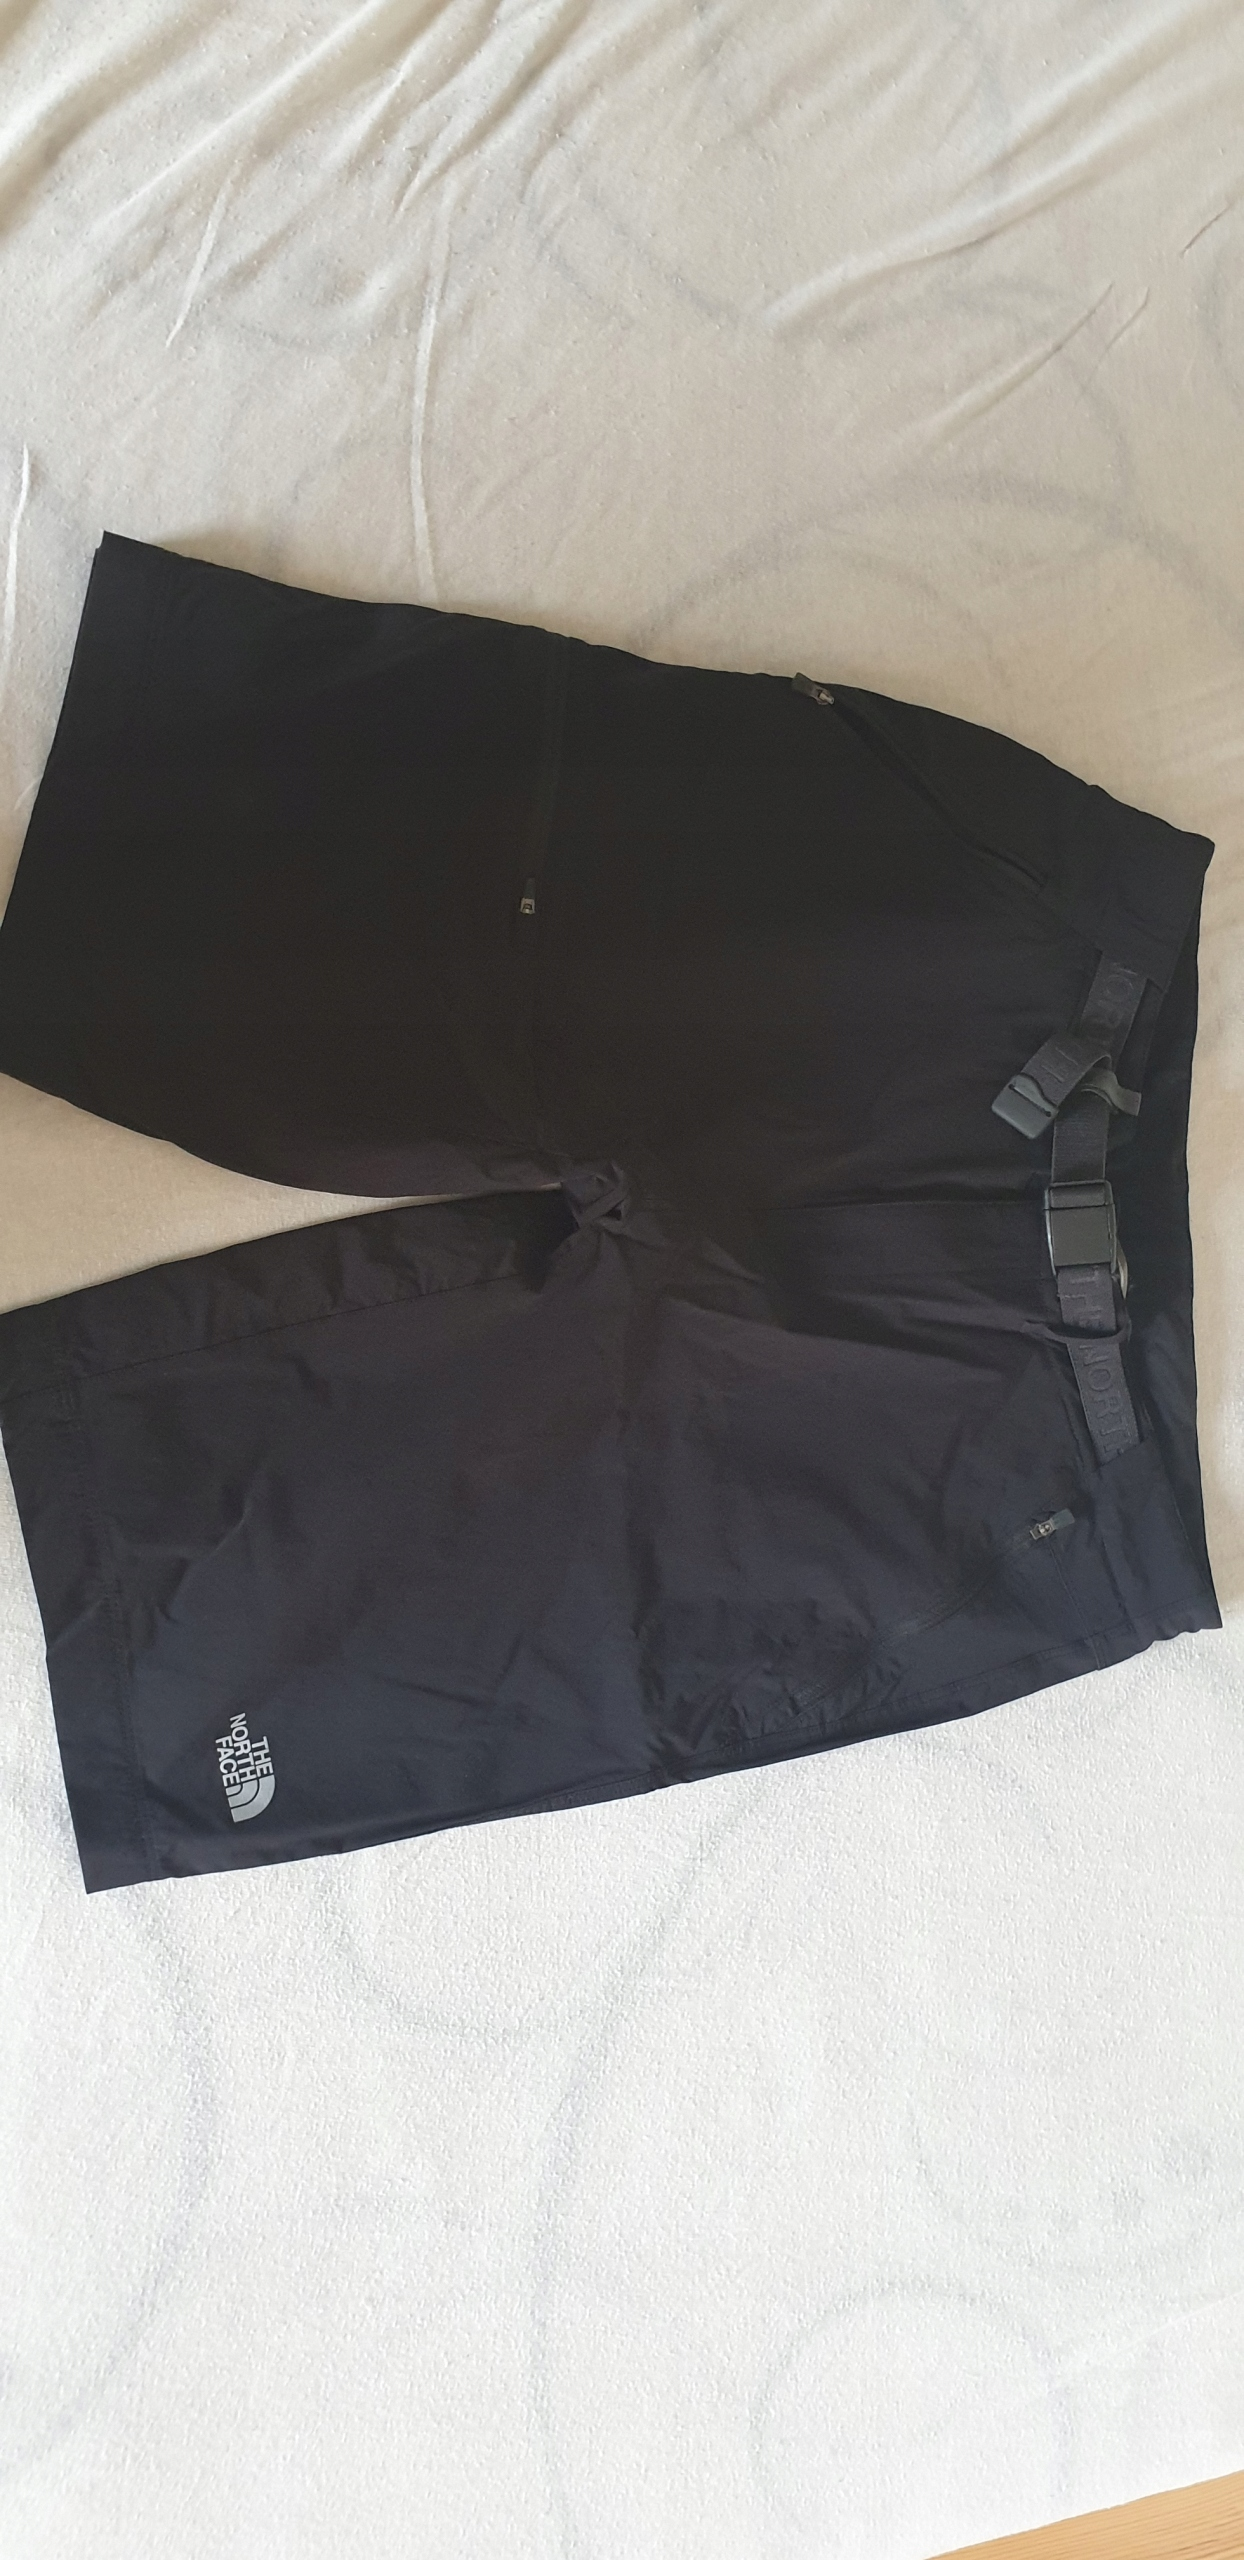 Spodenki The North Face Speedlight short rozm 34